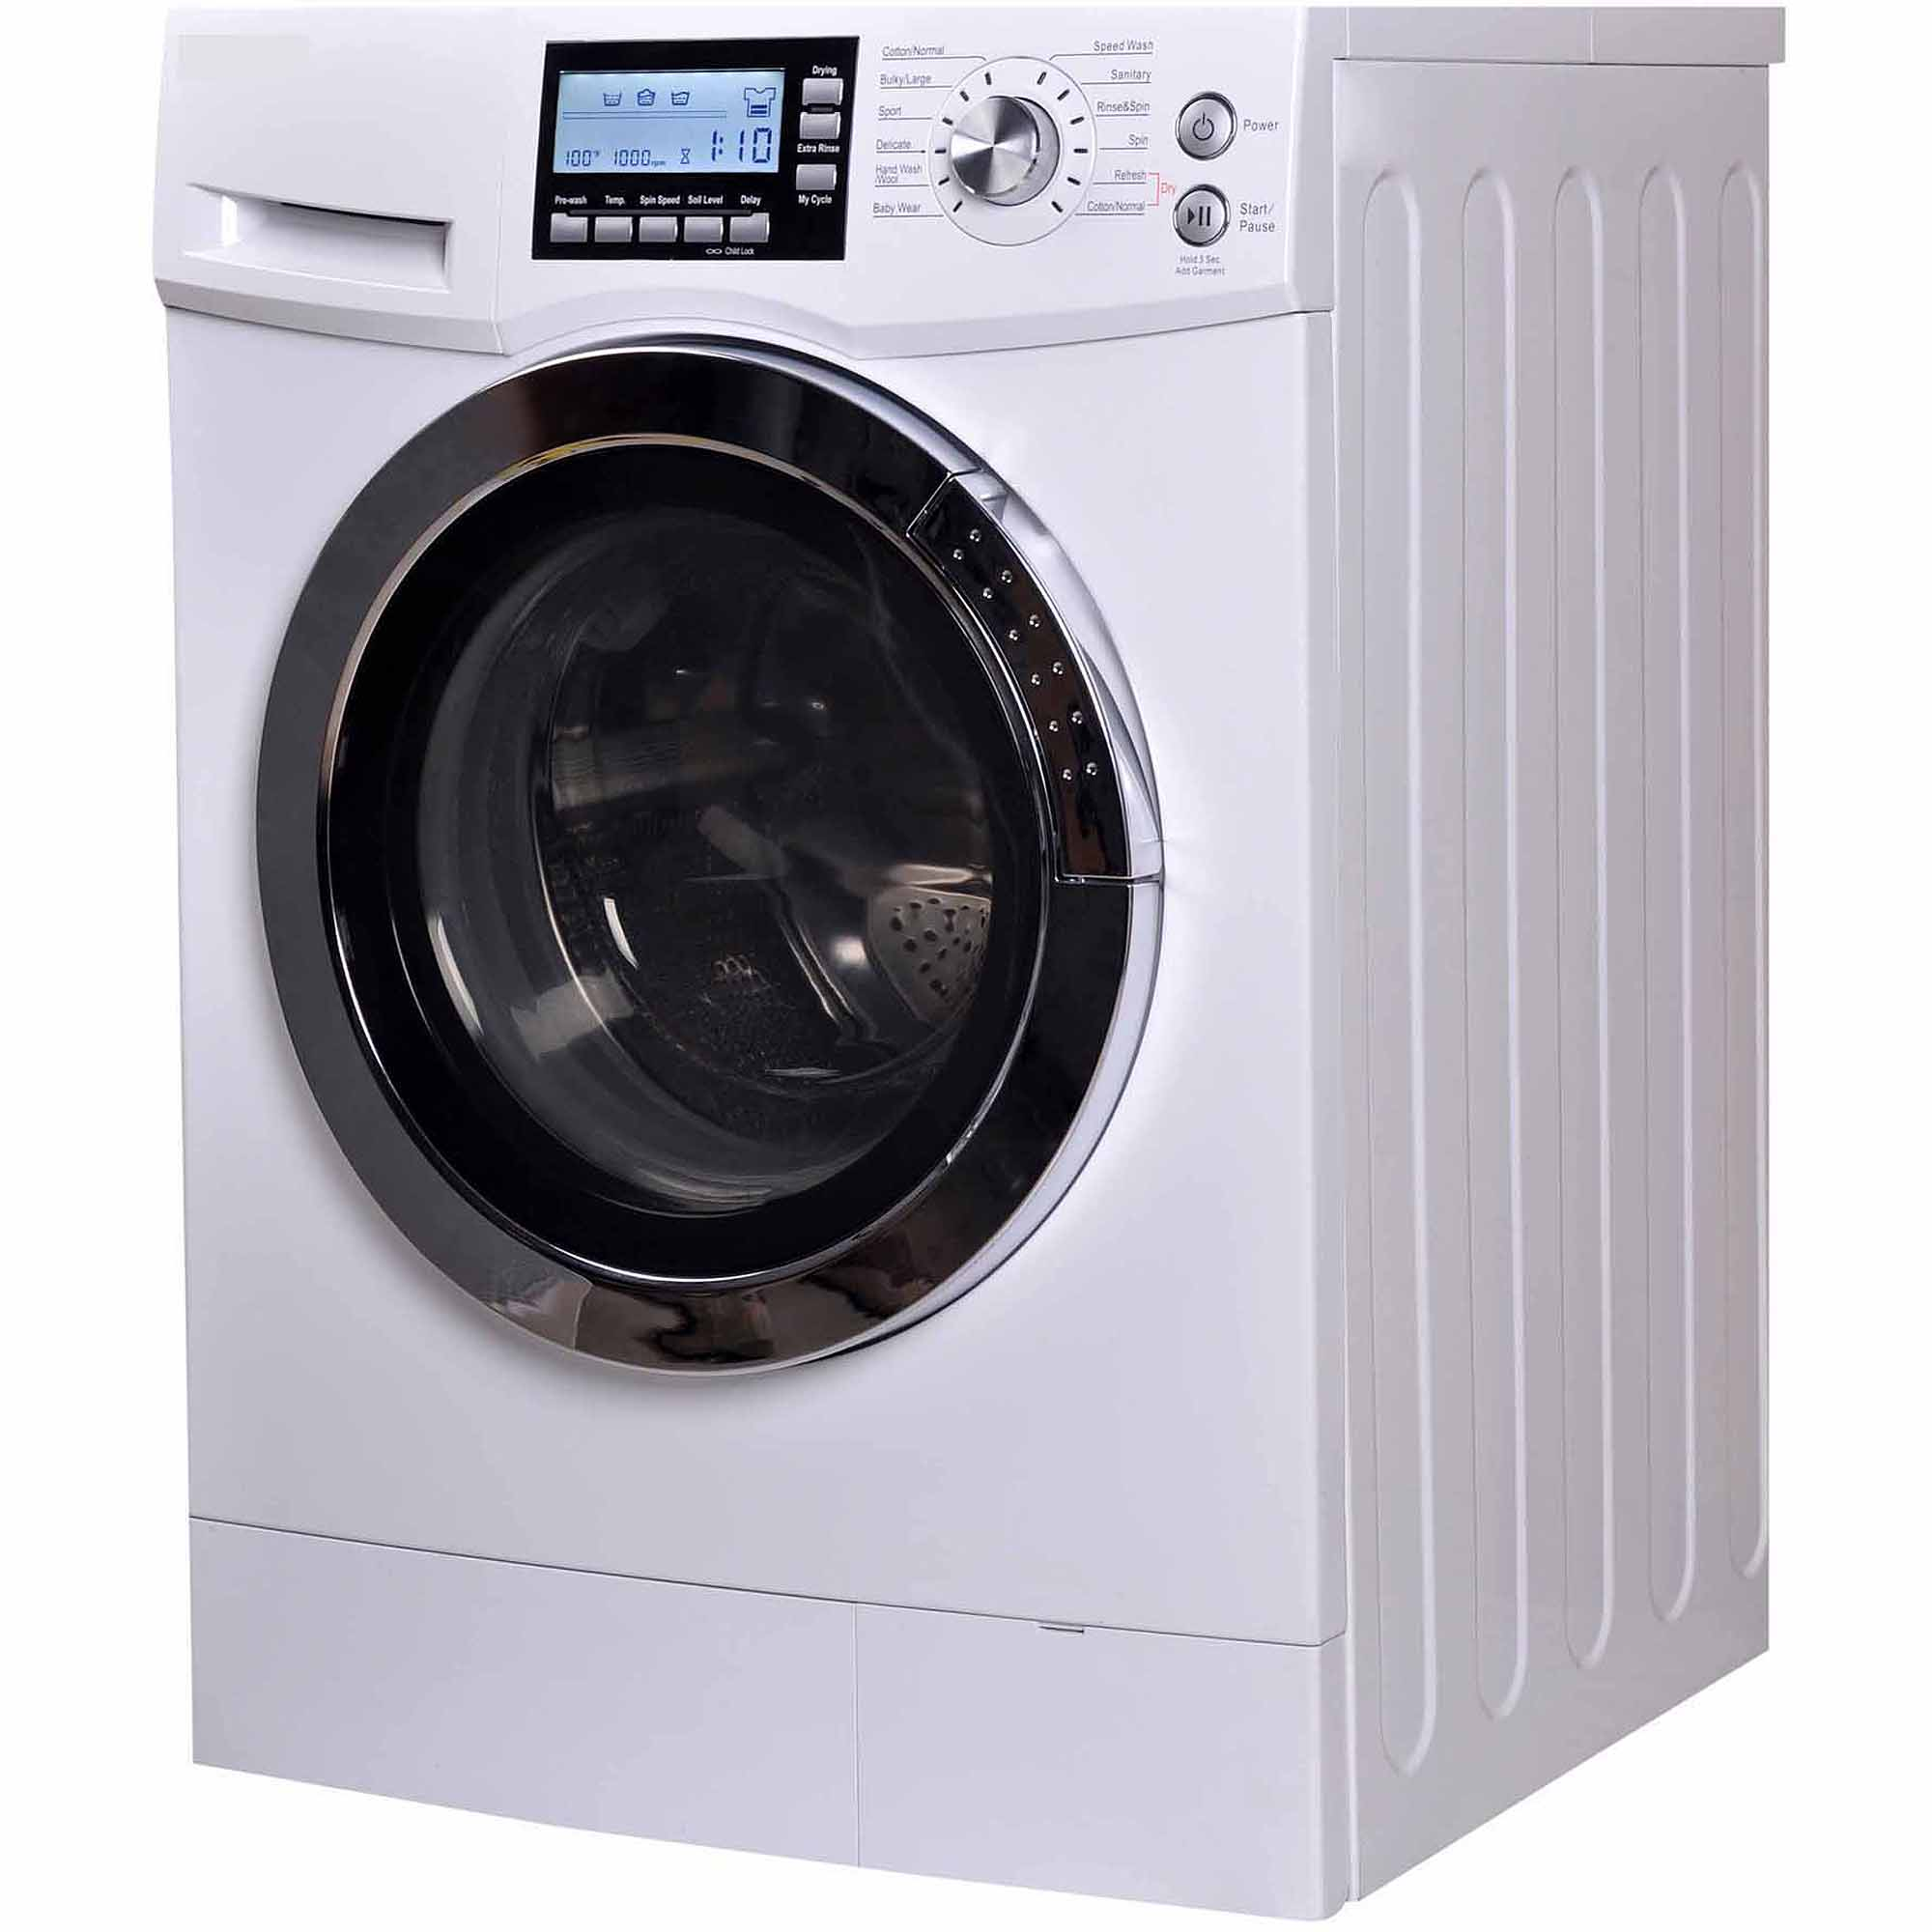 Lg all in one washer and dryer reviews - Rca 2 0 Cu Ft Front Loading Combo White